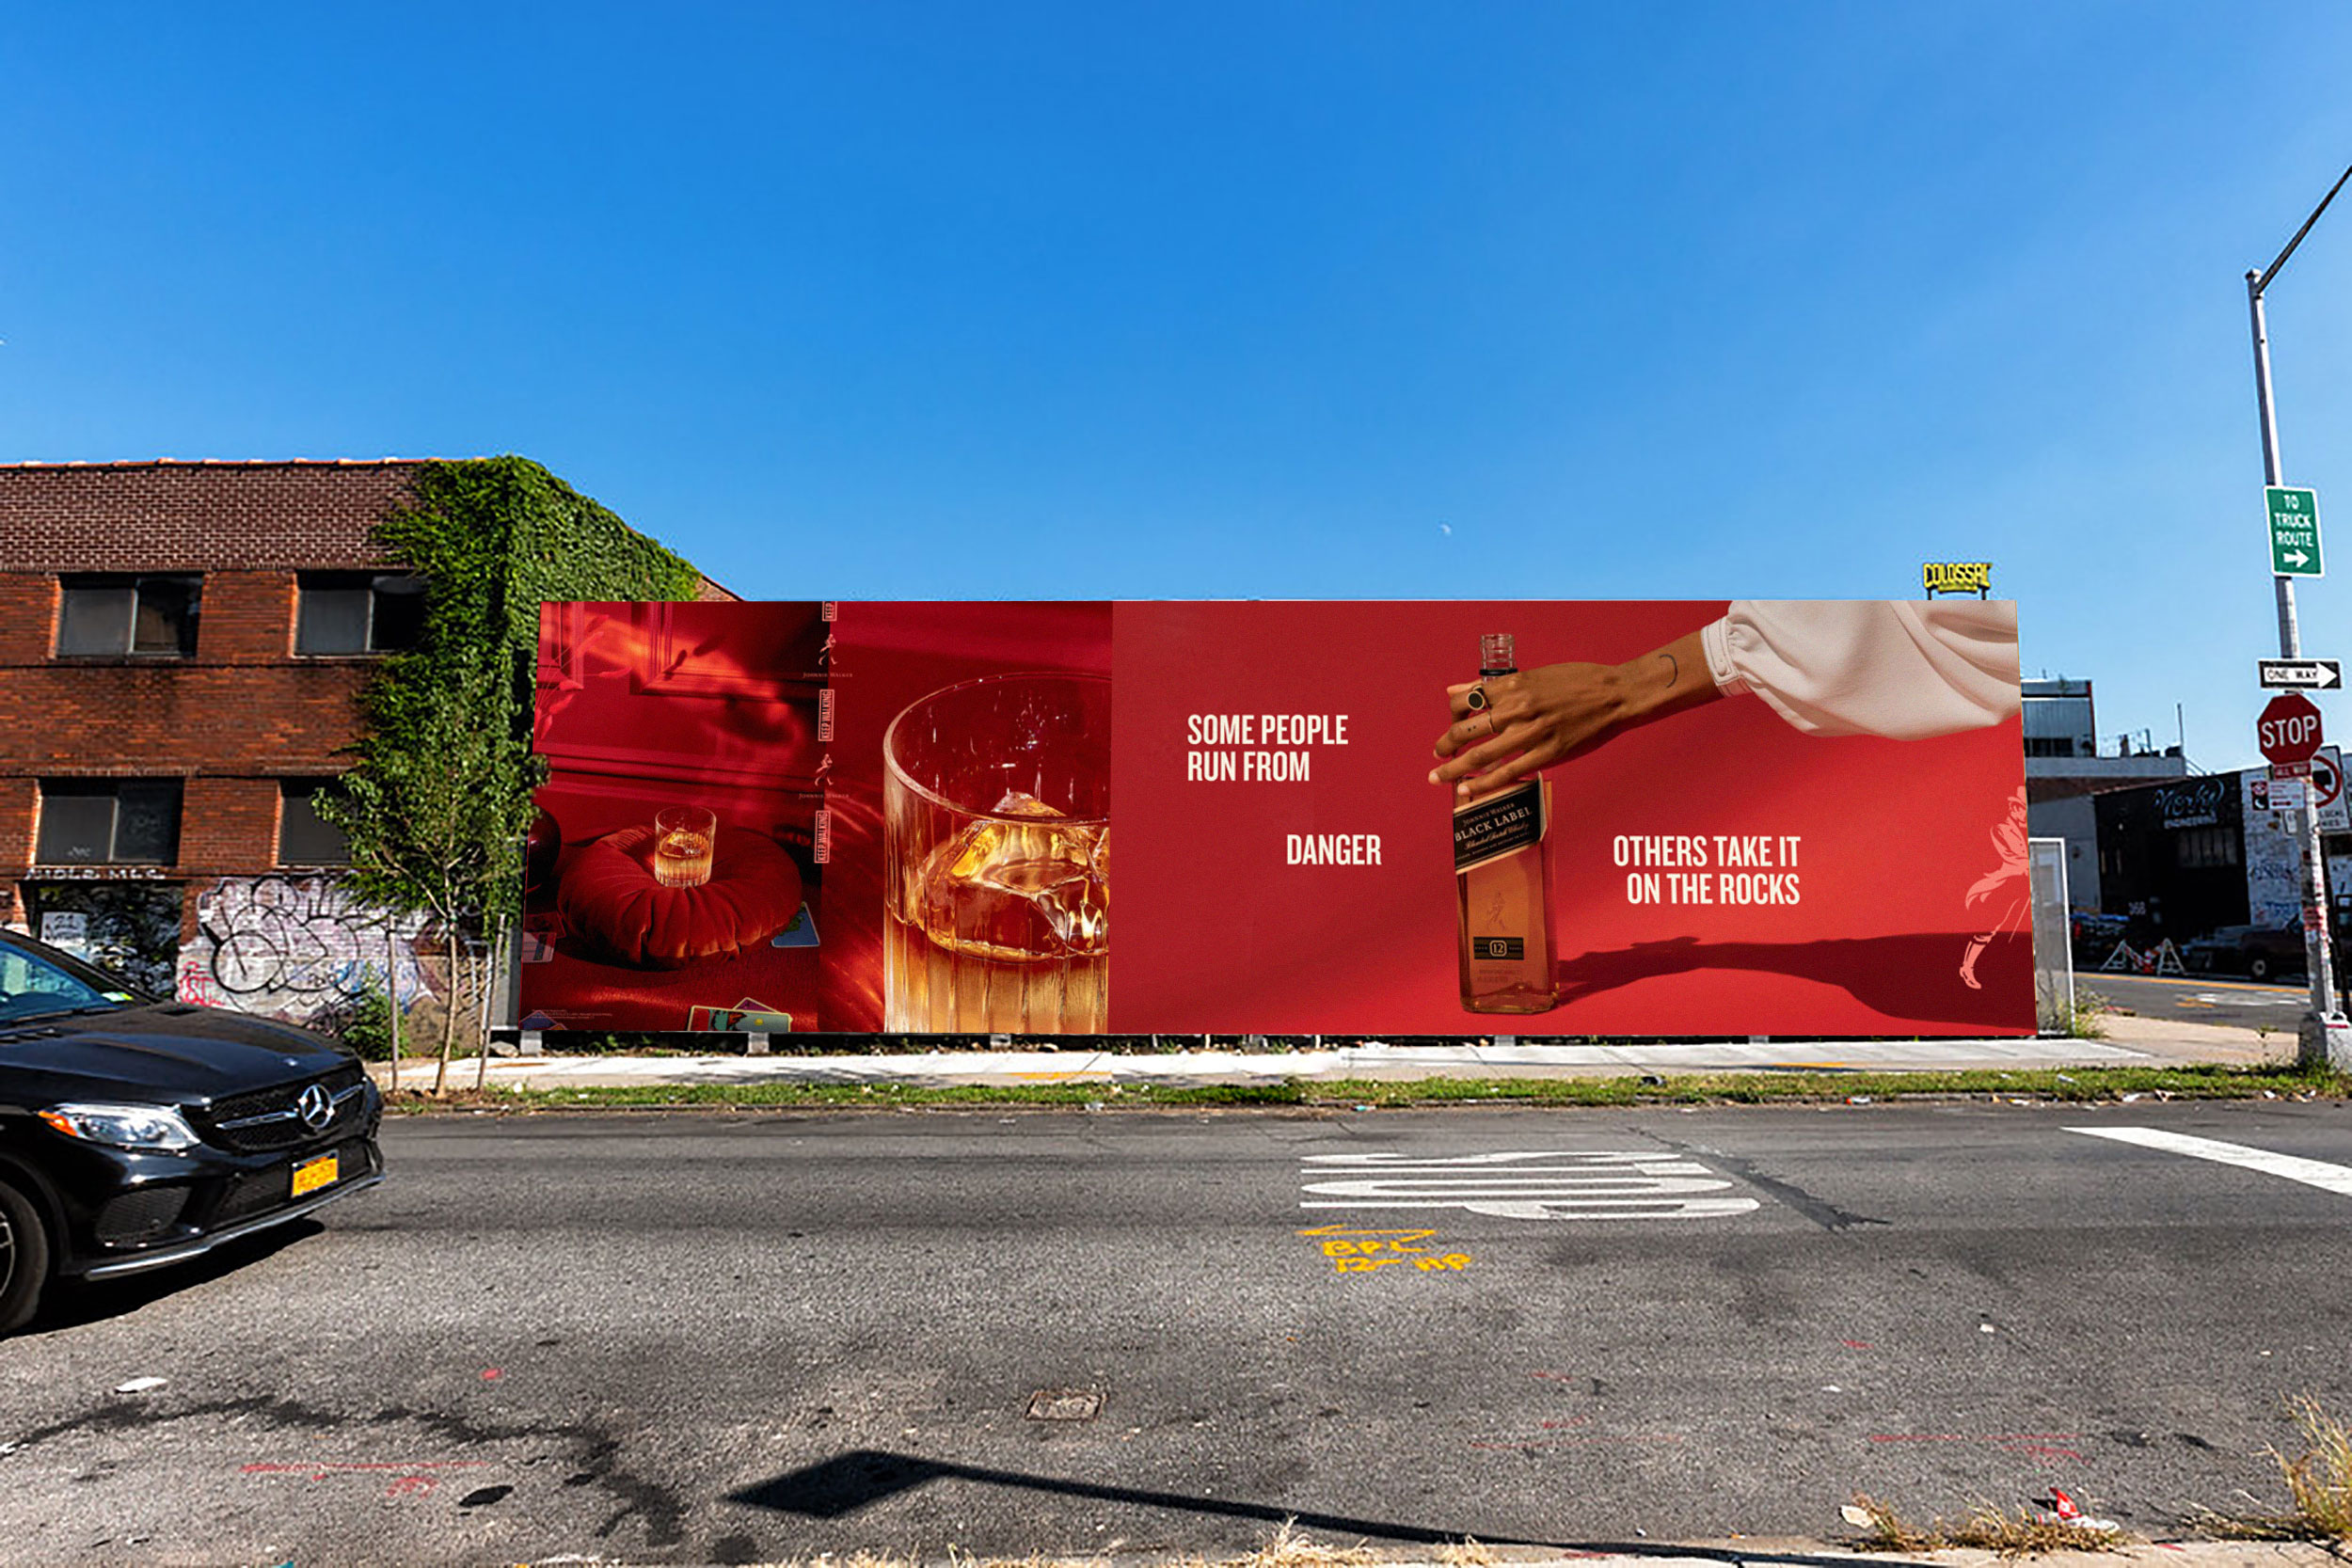 Johnnie Walker, The World's Number One Scotch Whisky, Unveils Vibrant New Look For Iconic Keep Walking Campaign photo